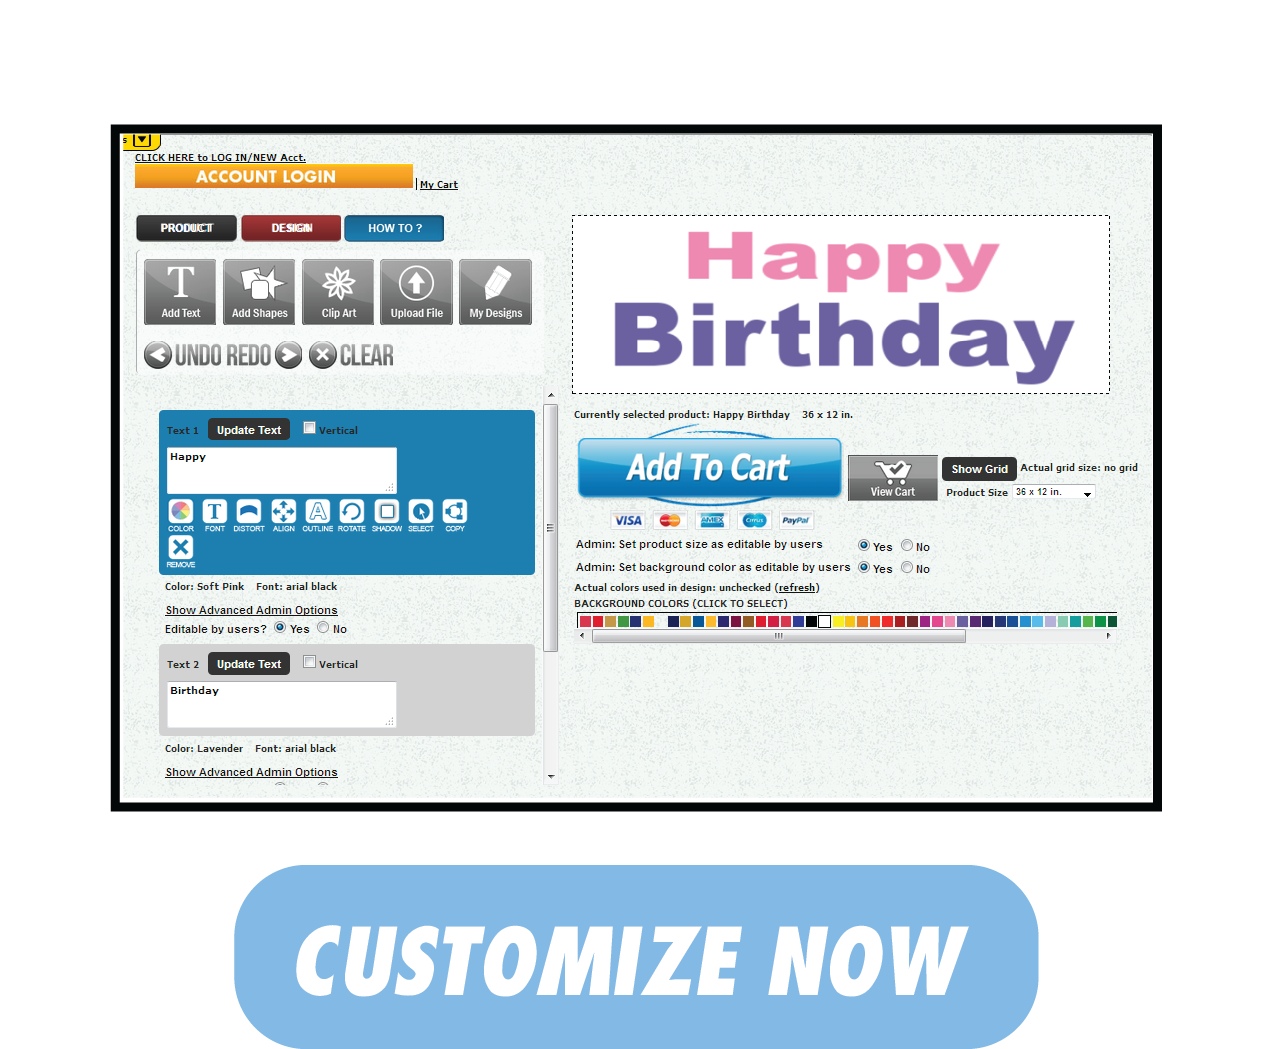 Happy Birthday Banner | Buy Now